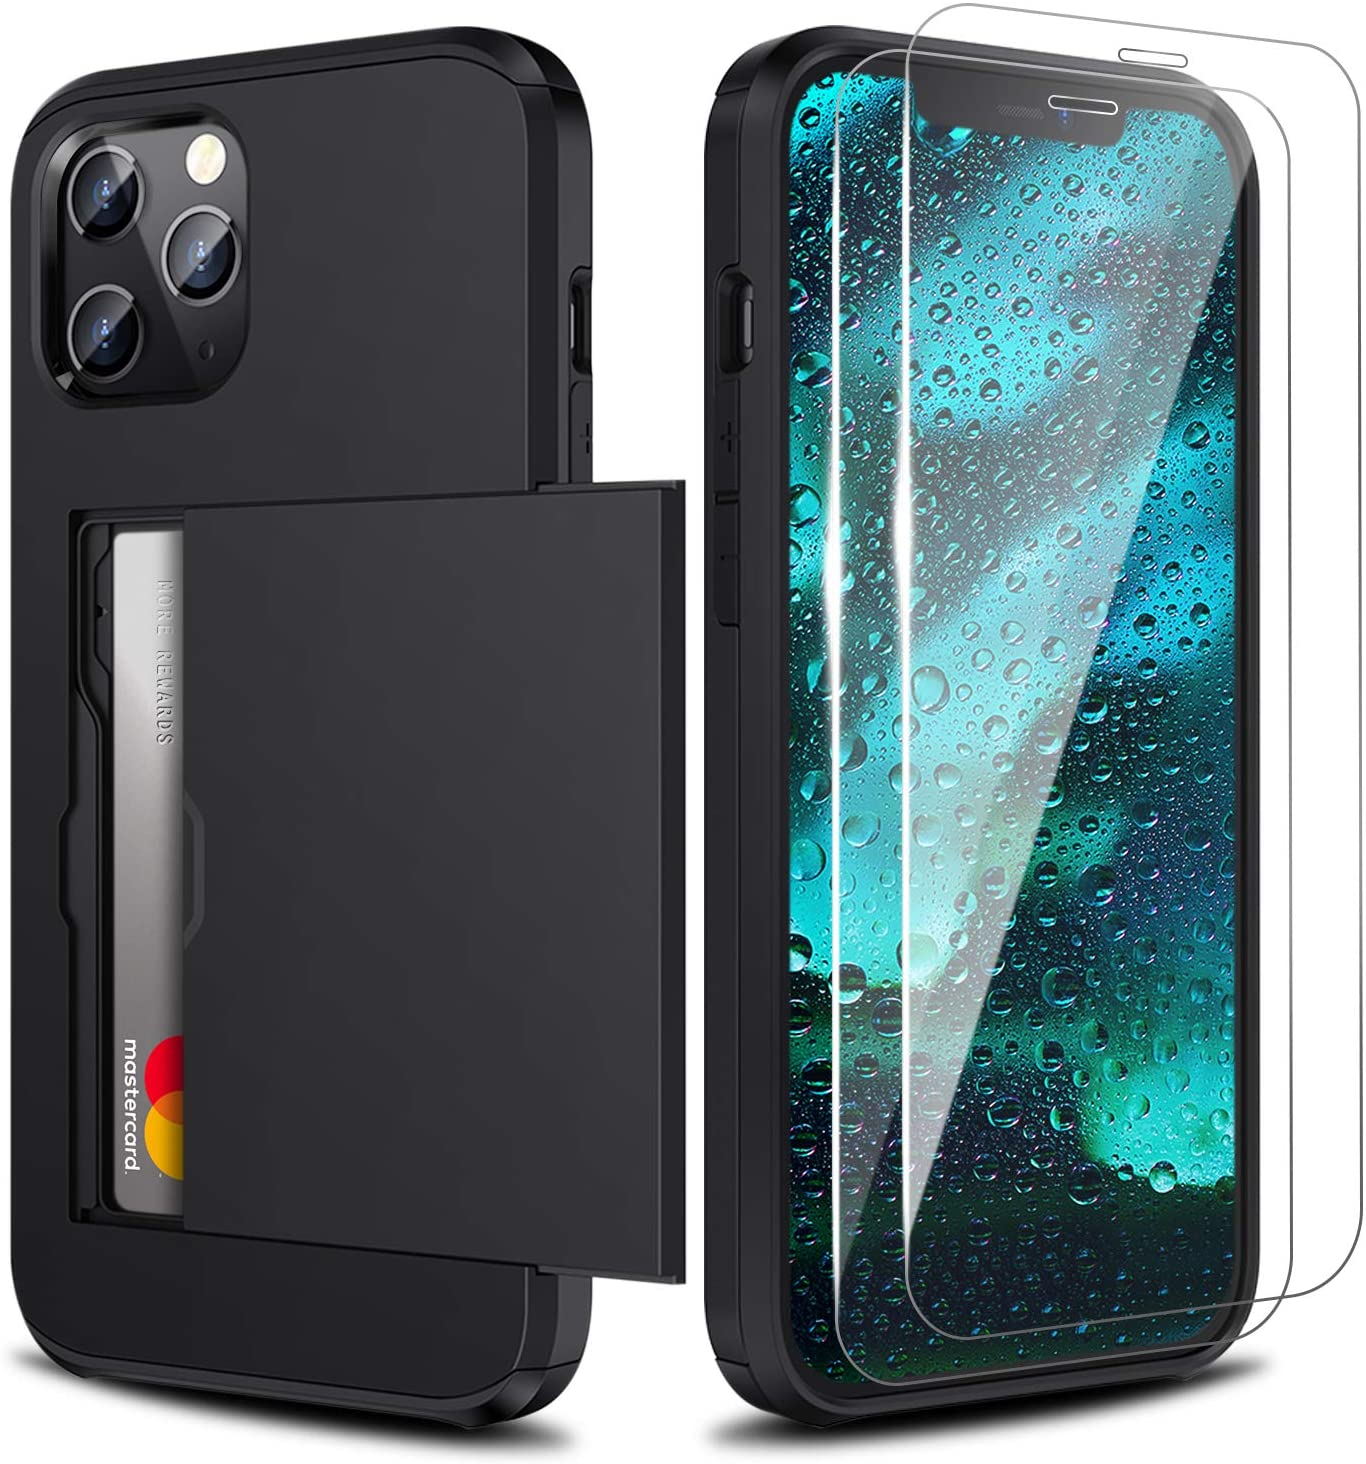 Zuslab Wallet case for iPhone 12 Pro Max with Card Holder Shockproof Anti Scratch Compatible with iPhone 12 Pro Max with Screen Protector[x2Pack] Black